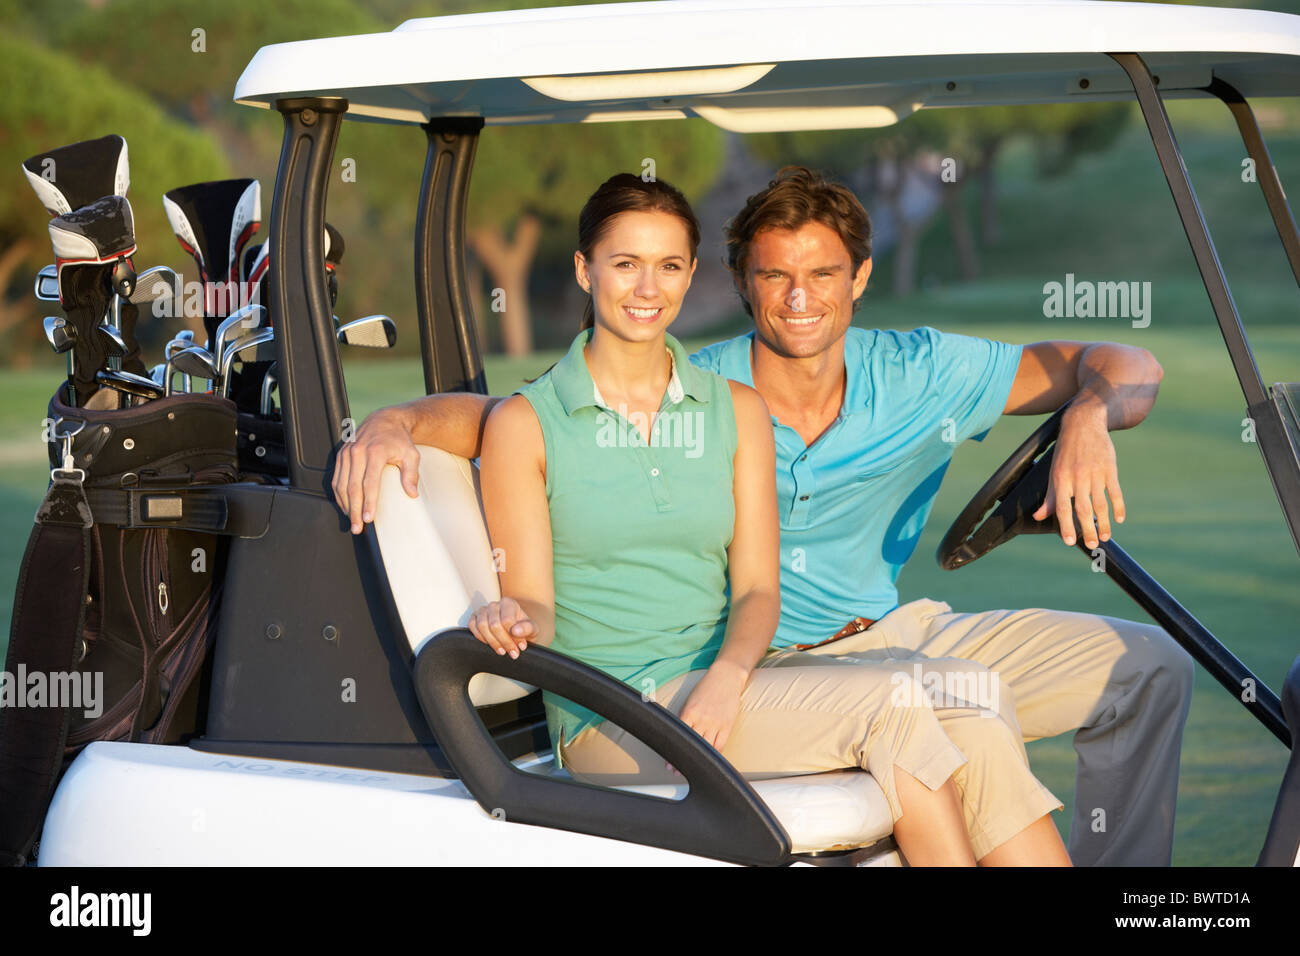 Couple Riding In Golf Buggy On Golf Course - Stock Image